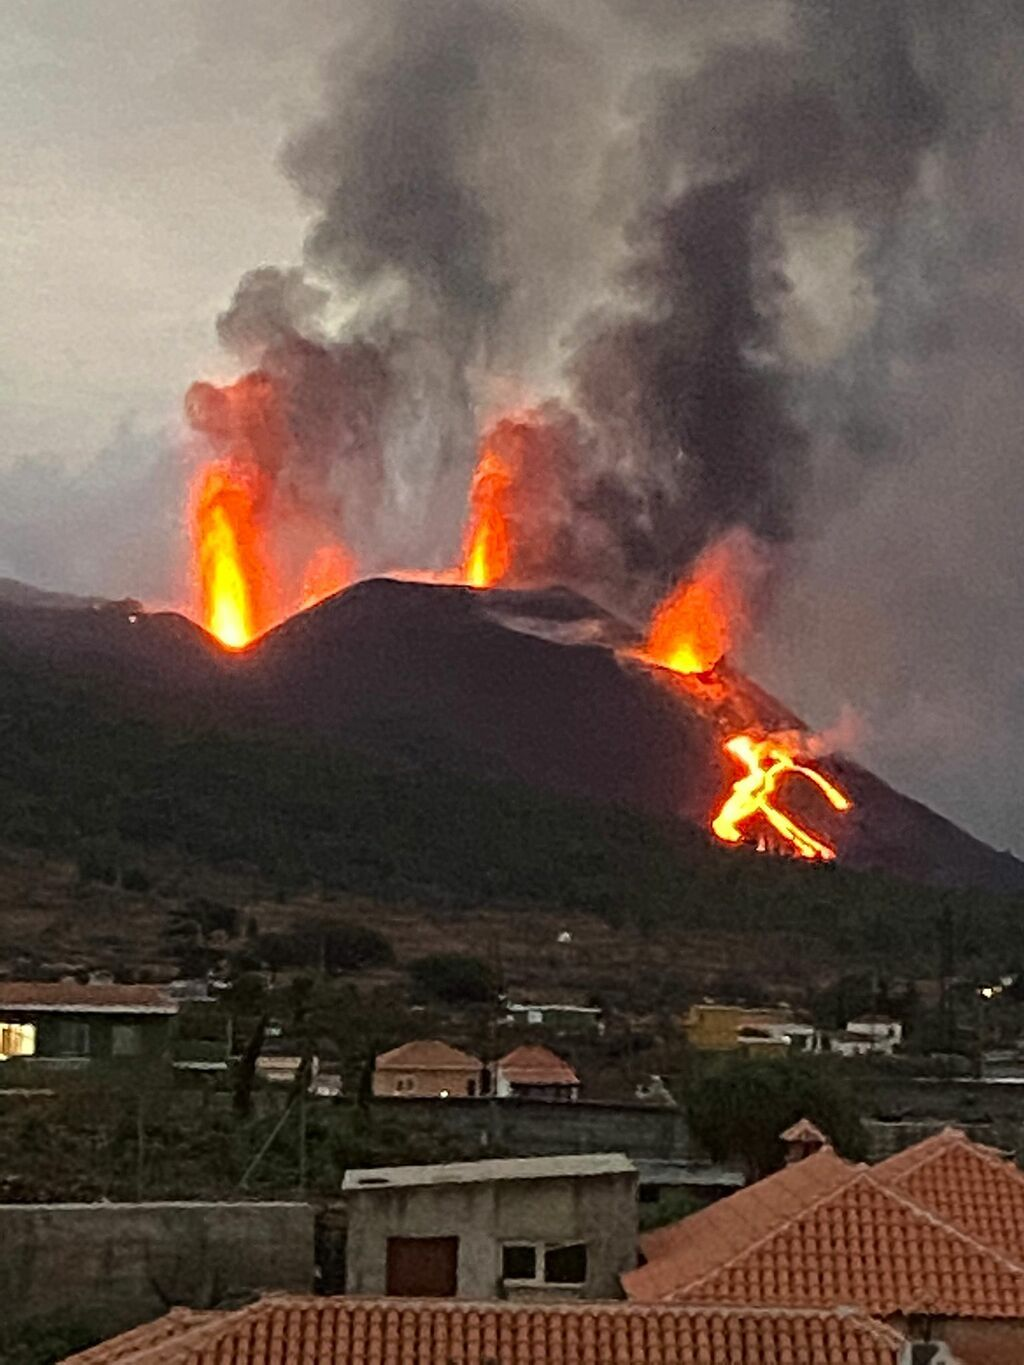 Activity at the vents last evening or early today (image: author unknown, via Volcanes de Canarias @VolcansCanarias / twitter)